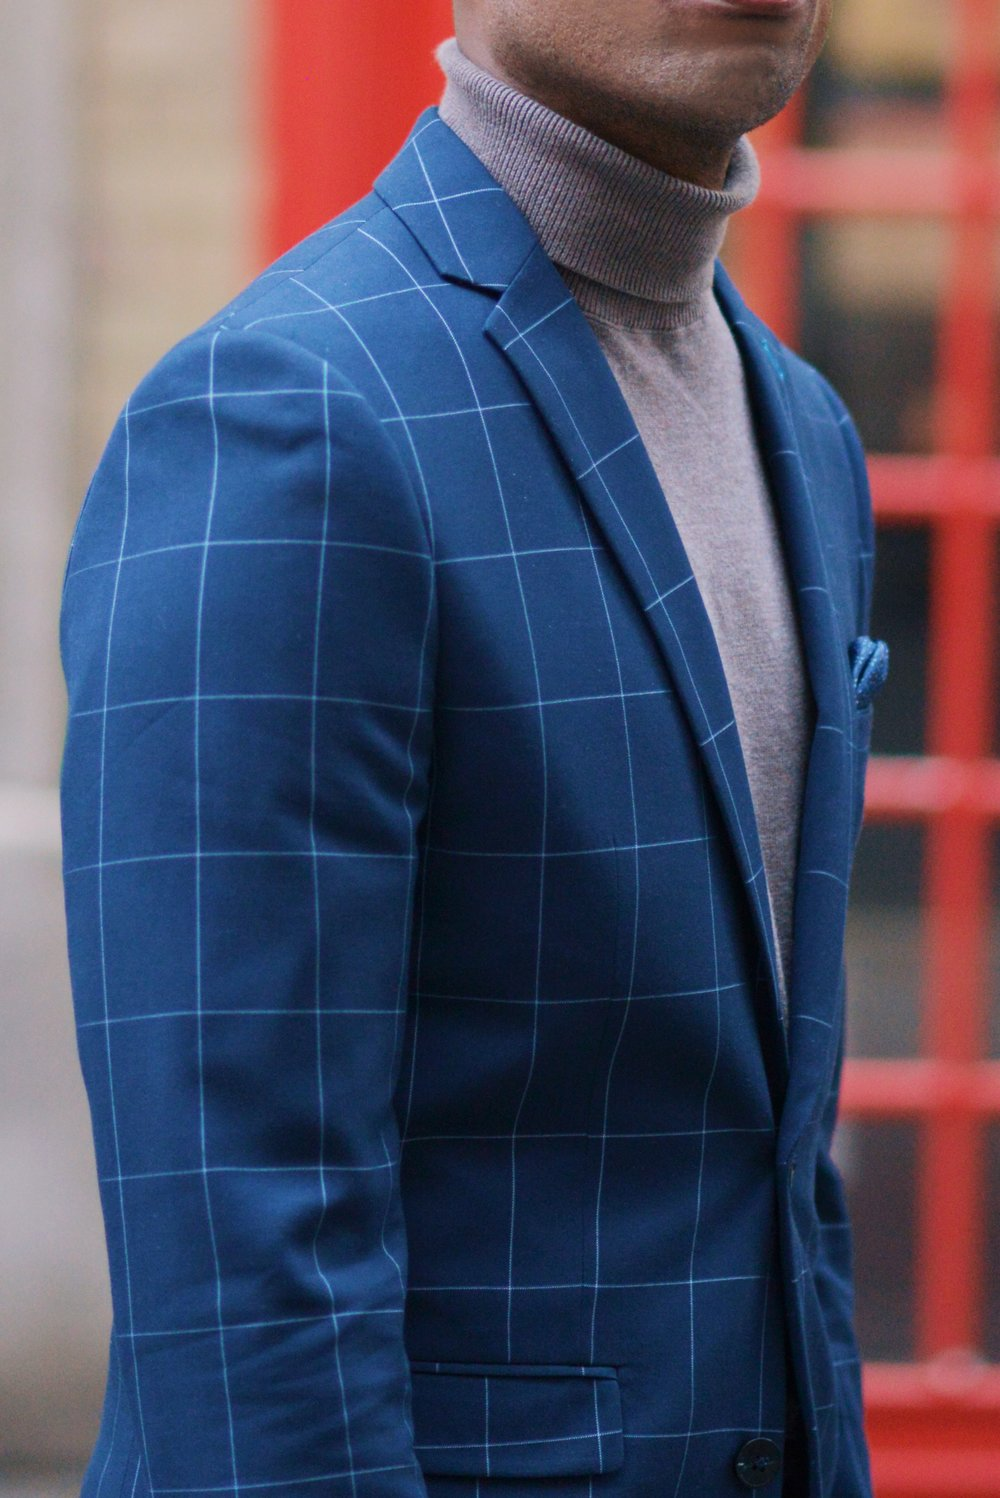 The-Look-Principle-Suited-Up-In-London-4.jpg